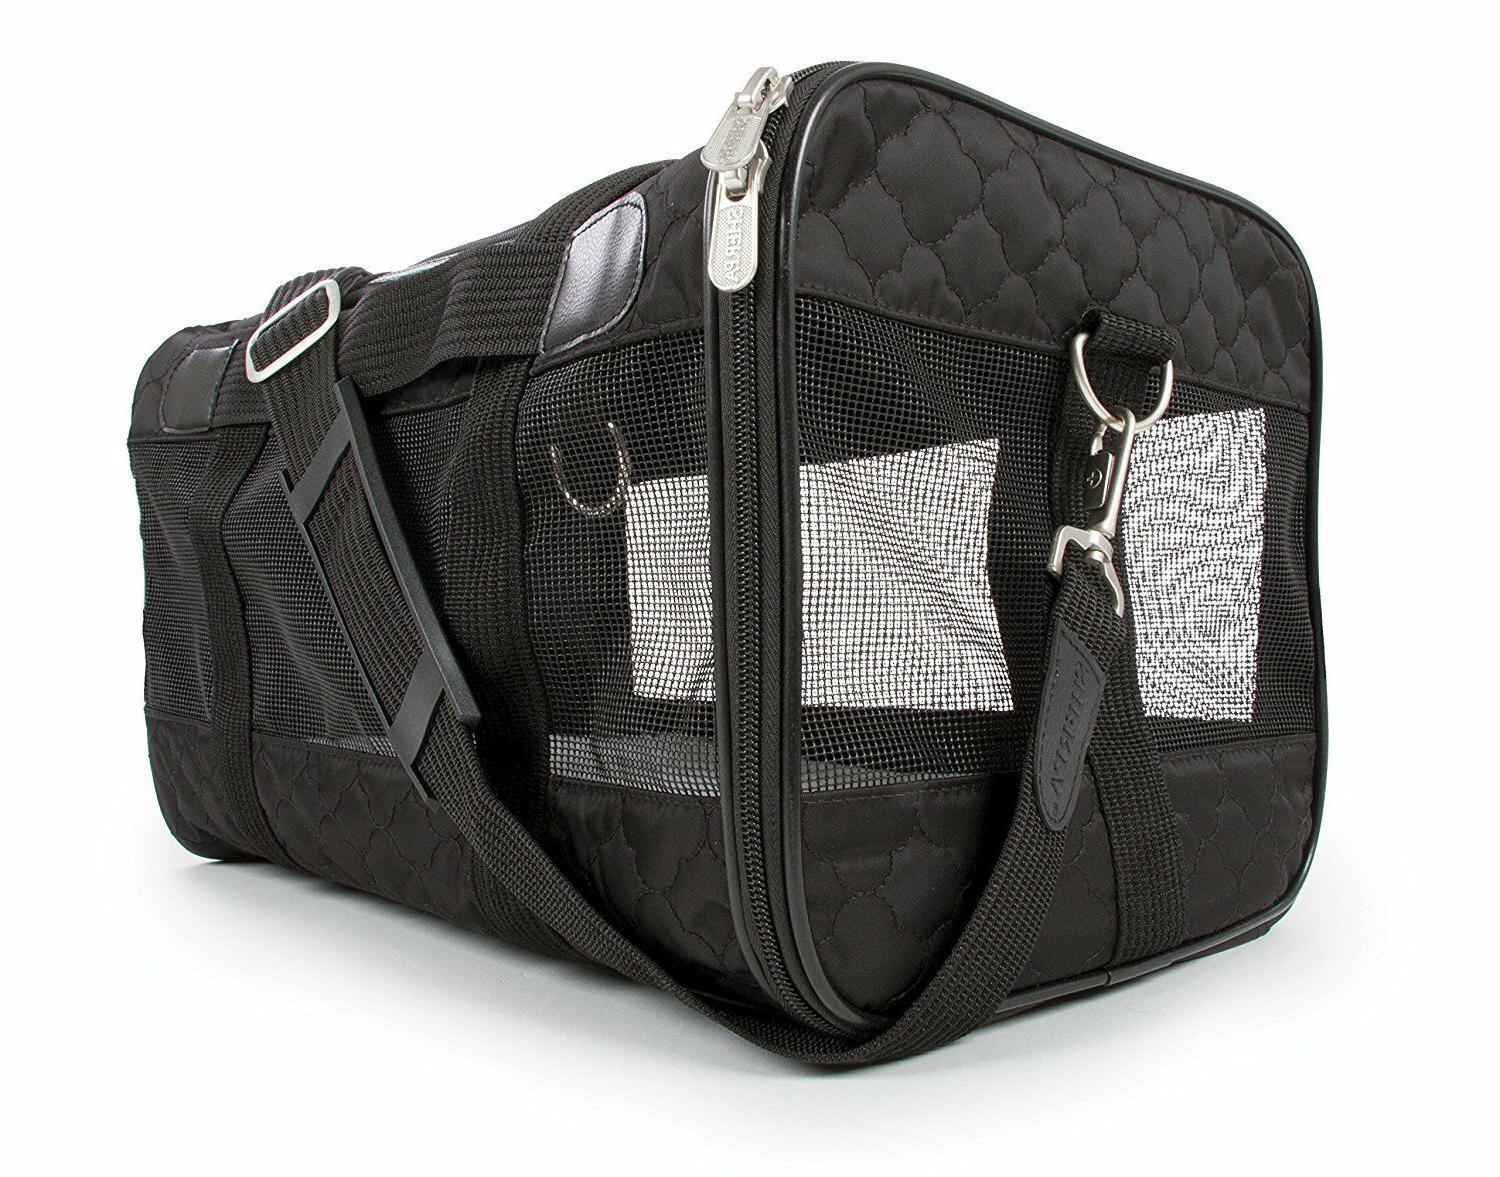 Sherpa Travel Airline Approved Carrier Size Black